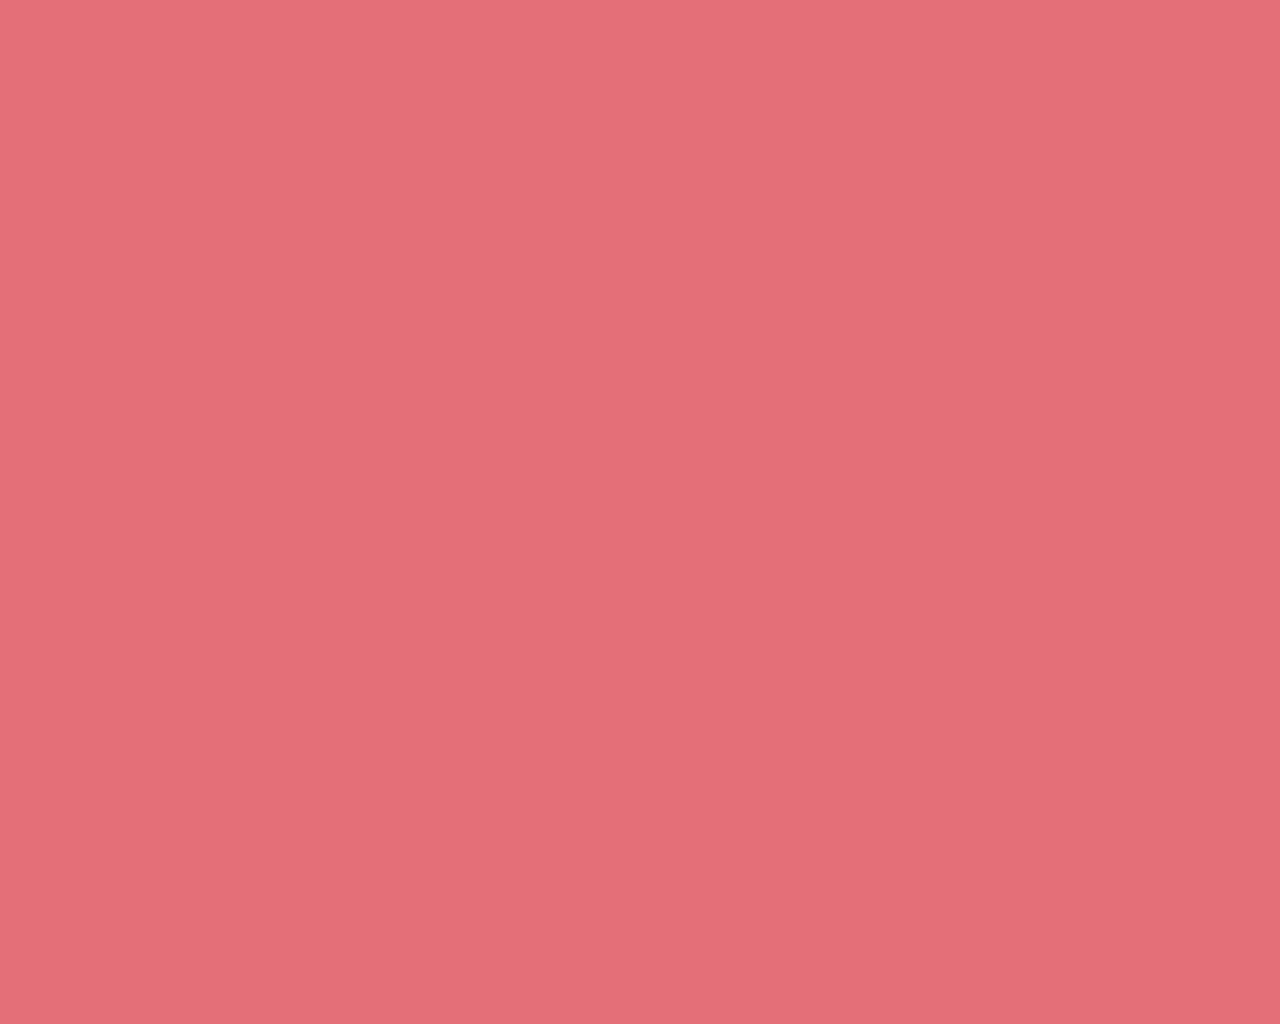 1280x1024 Tango Pink Solid Color Background